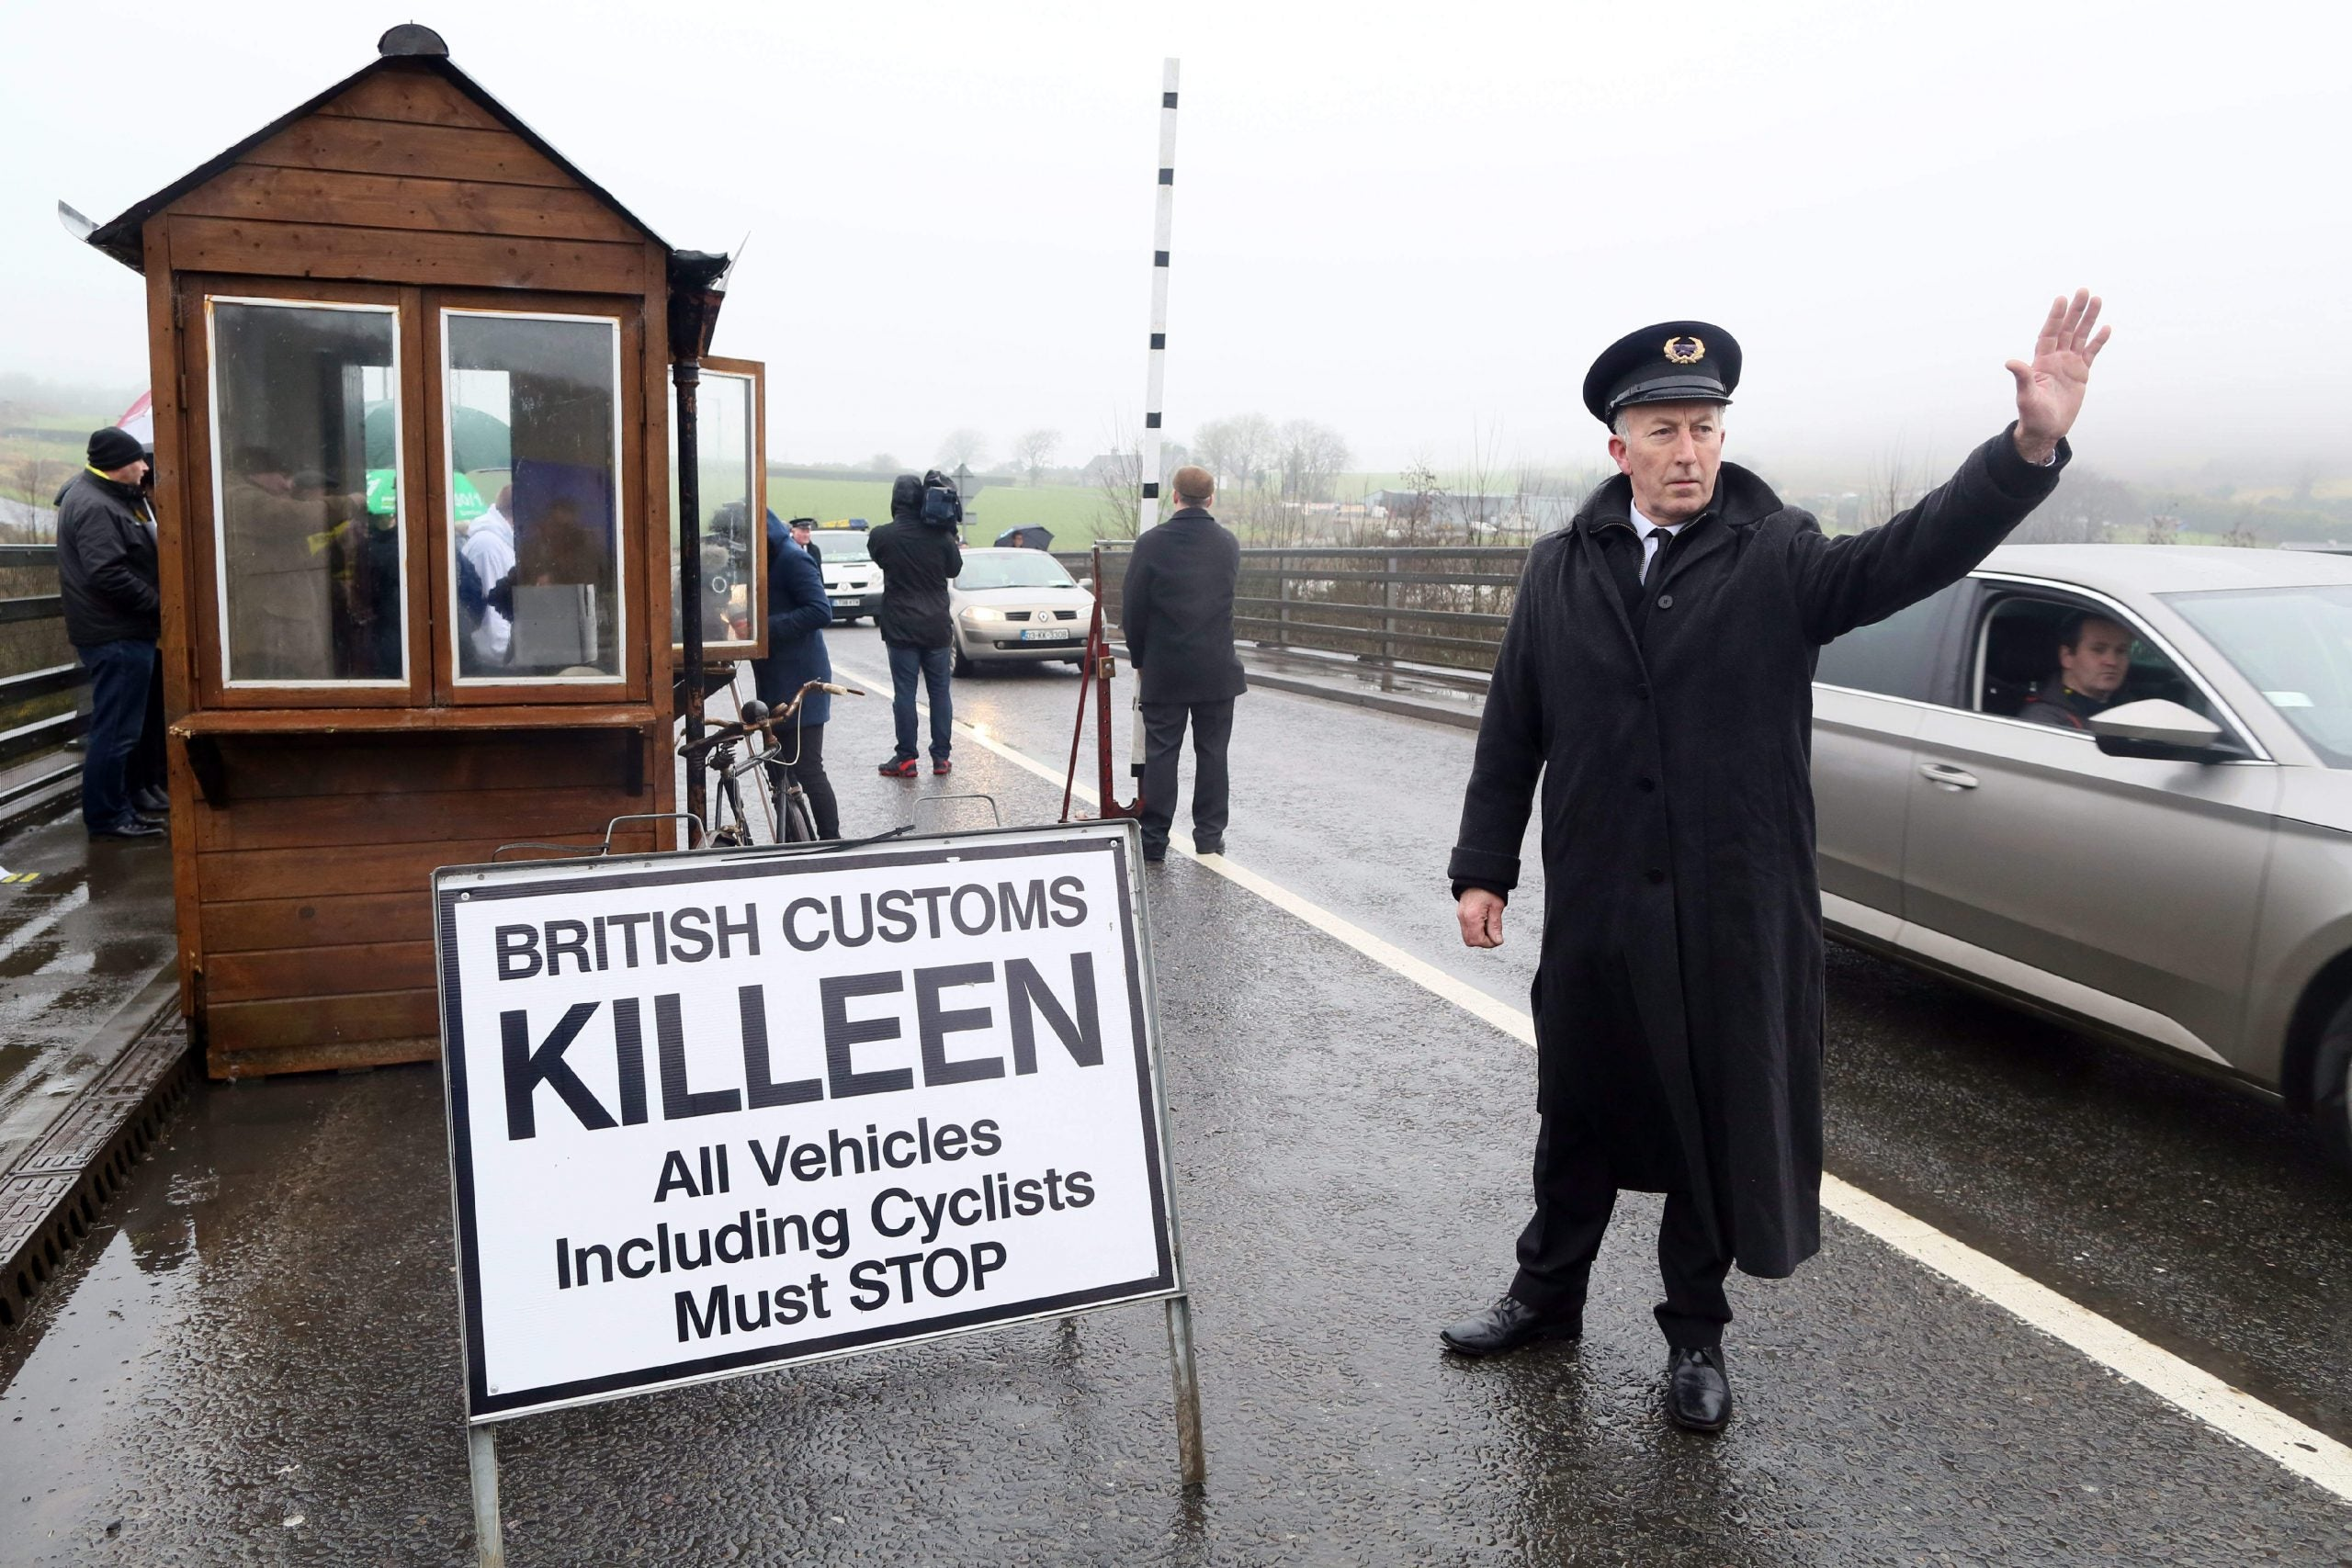 The government is abdicating responsibility for the Irish border after Brexit